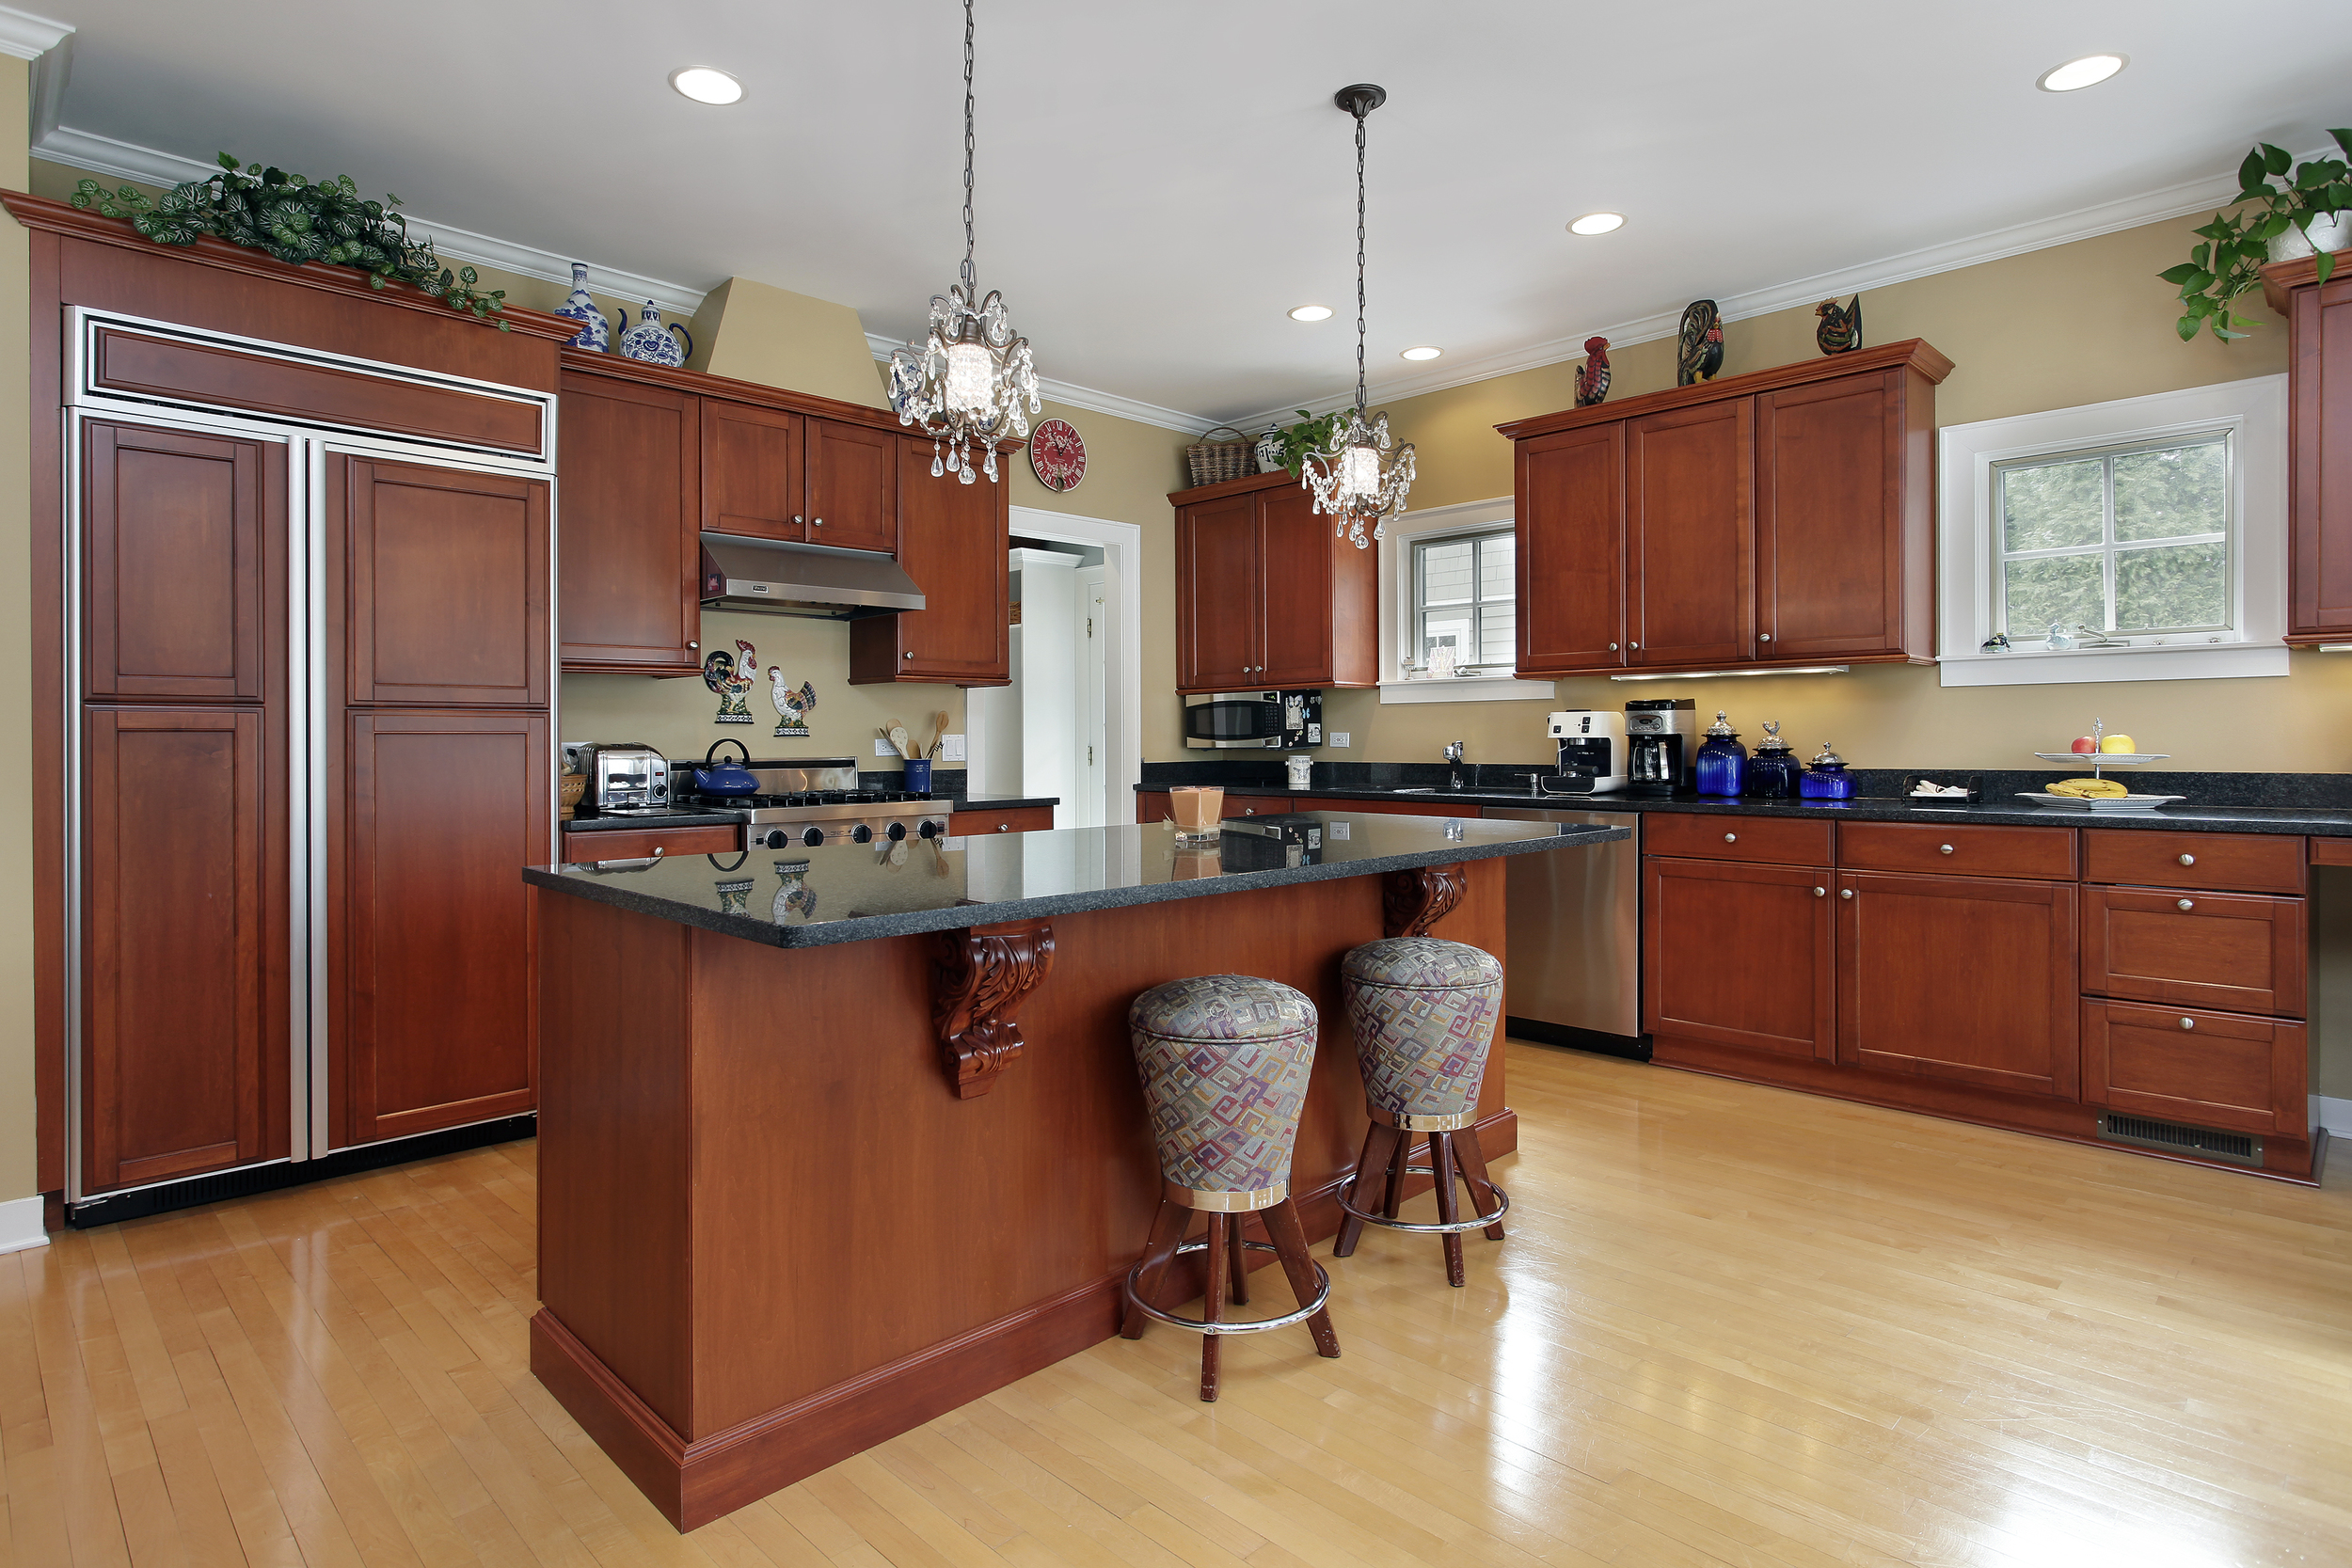 Kitchen-WithIsland+BrownWood-shutterstock_109770134.jpg